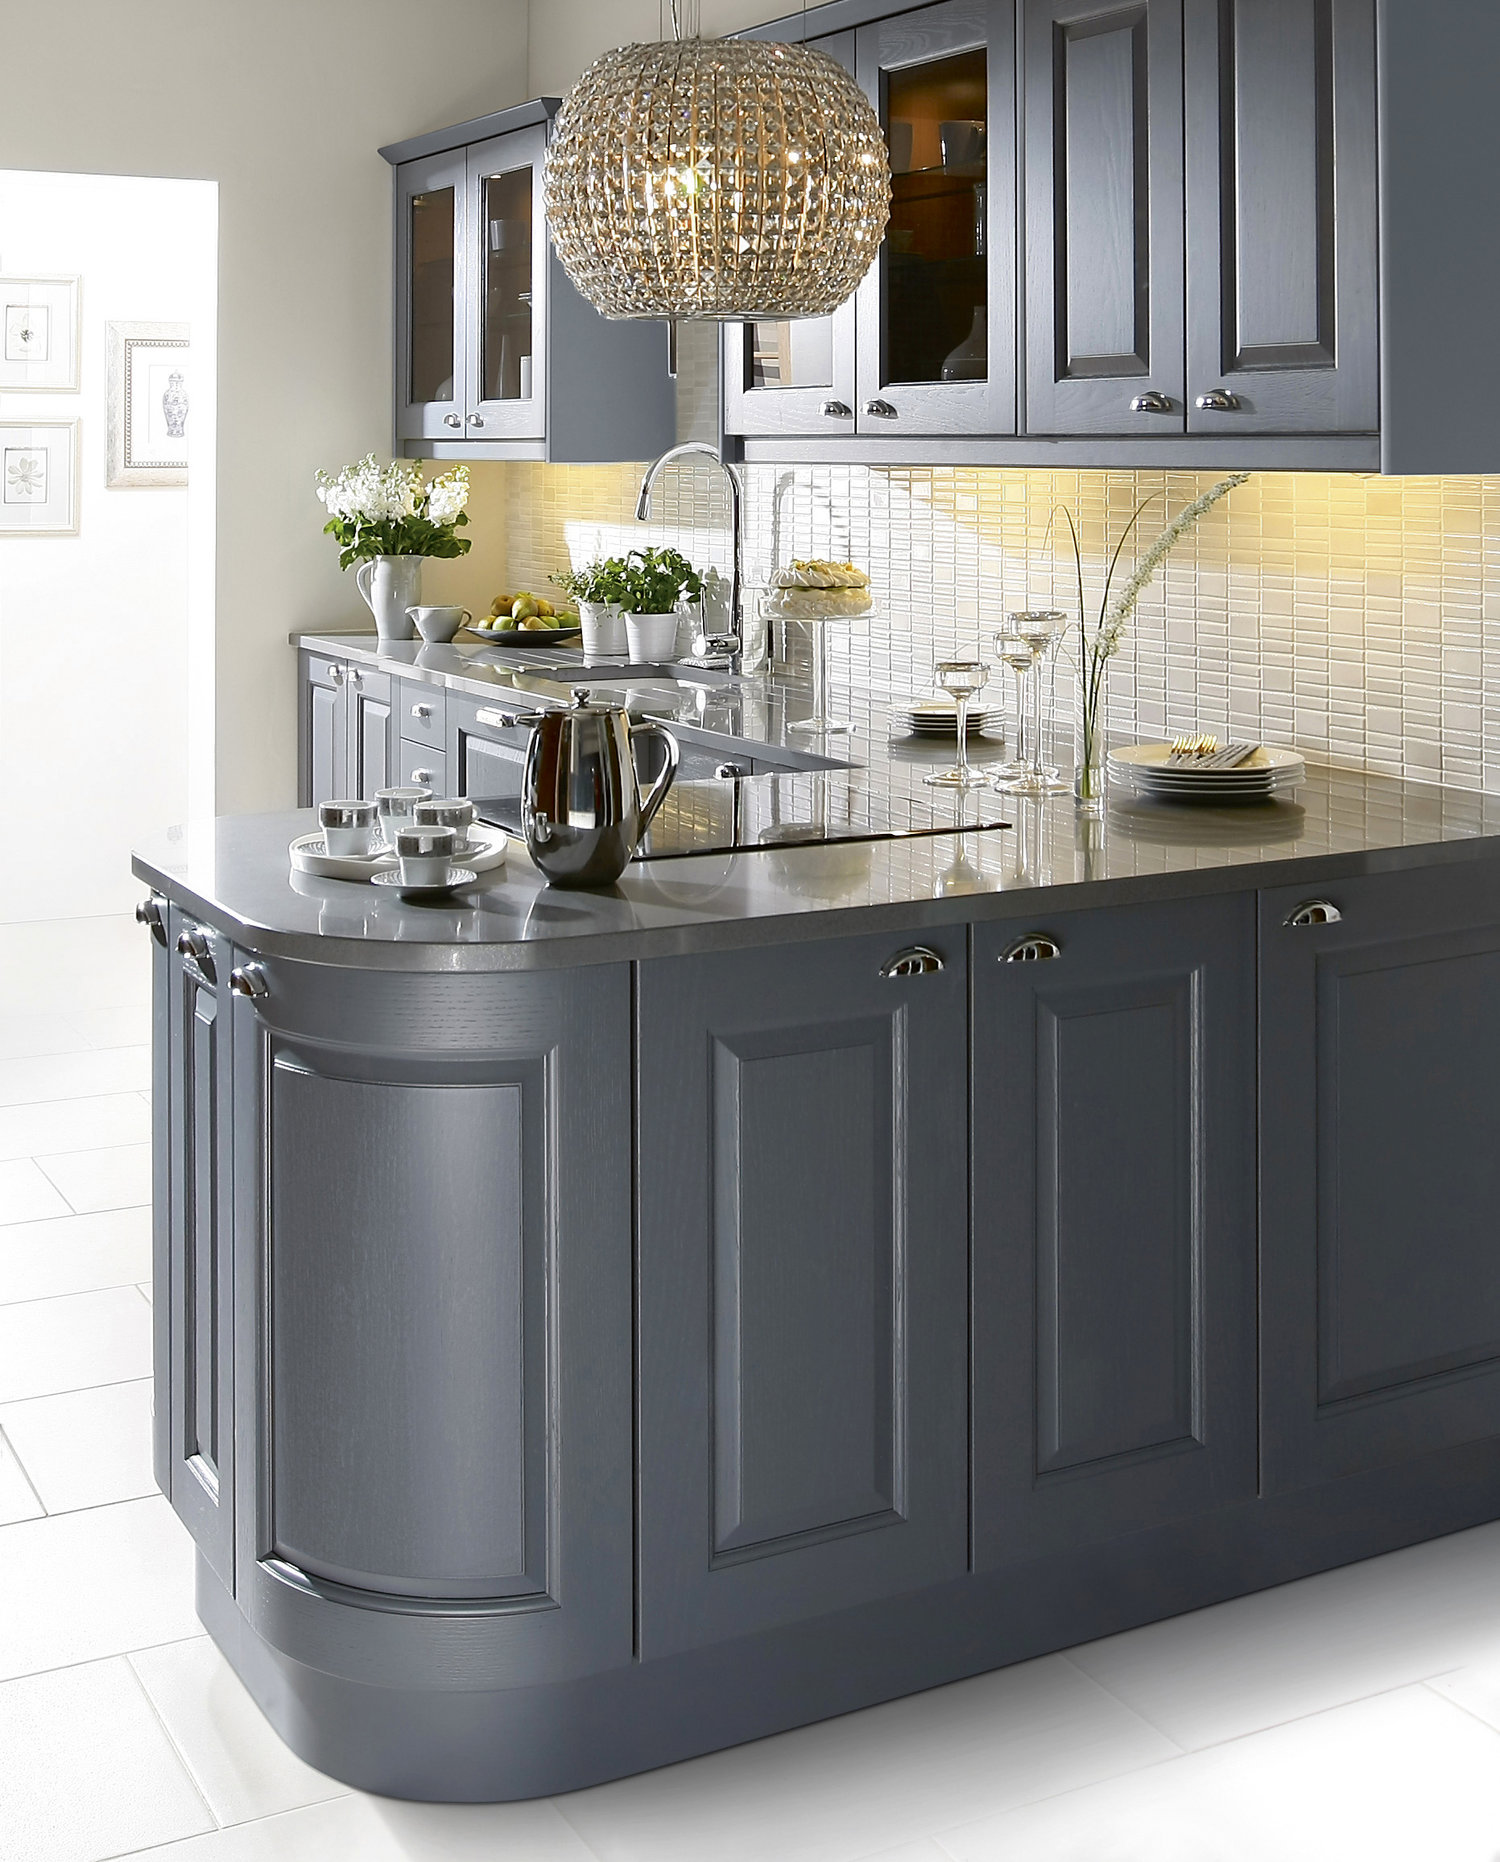 feature curved door profiles are seamlessly incorporated into a raised and fielded kitchen.